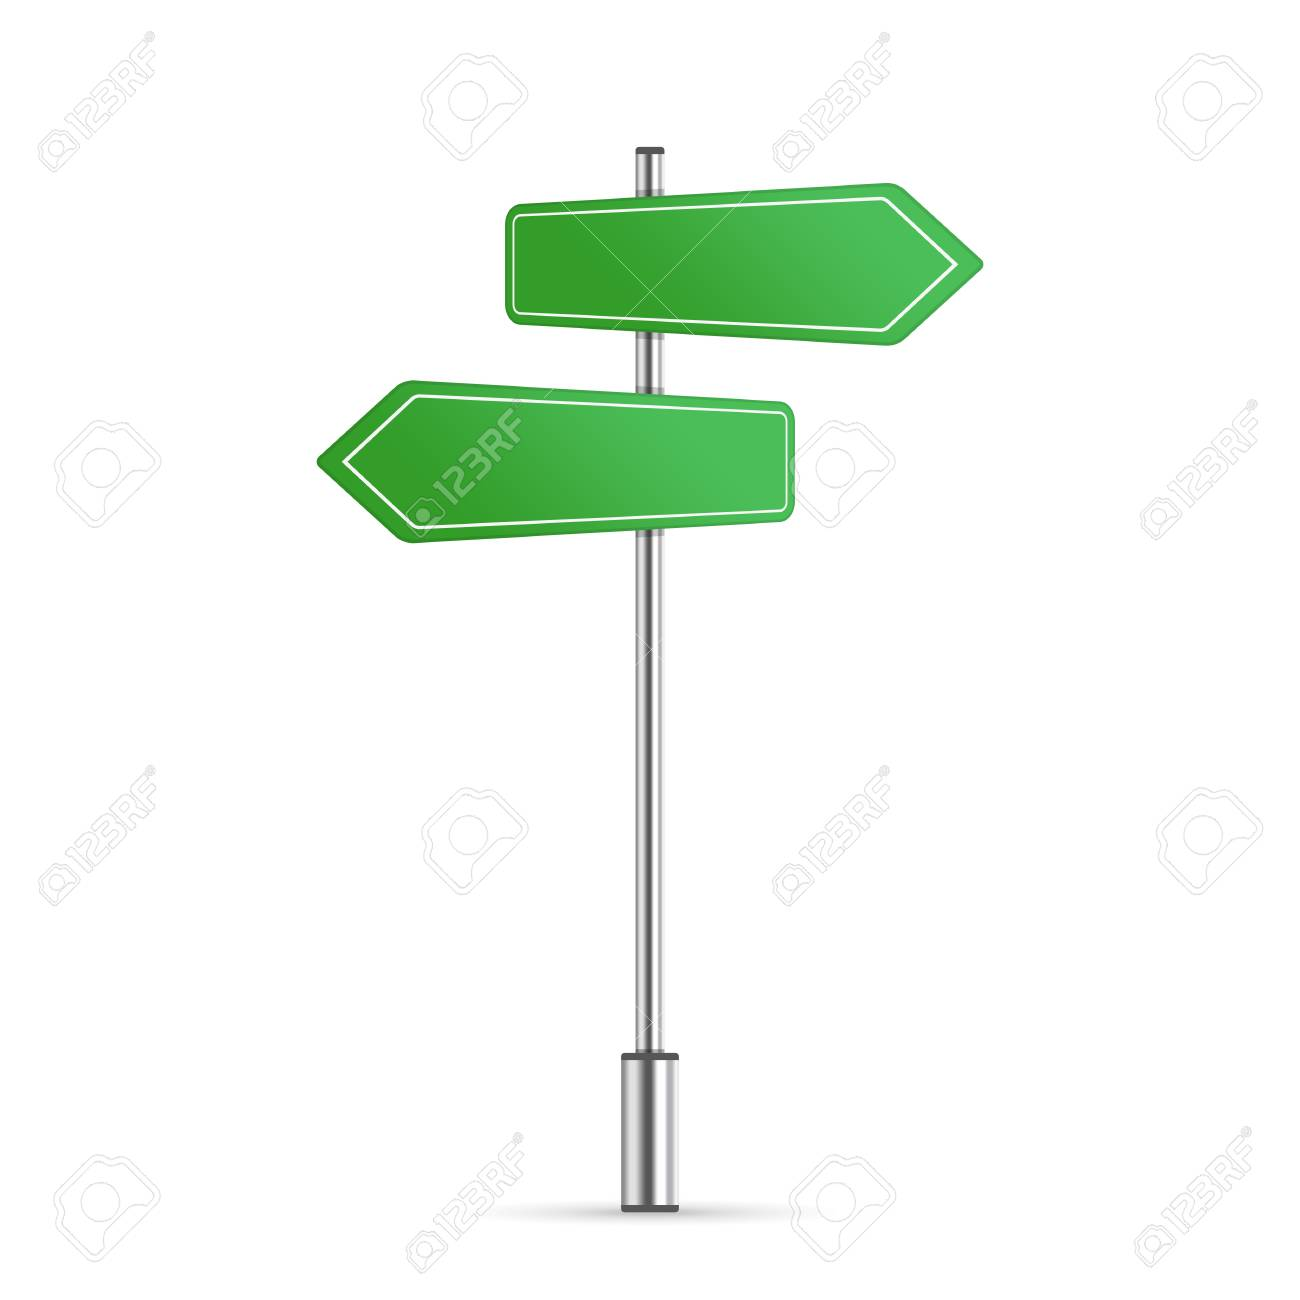 street sign template with place for text. blank road signs isolated..  royalty free cliparts, vectors, and stock illustration. image 113600020.  123rf